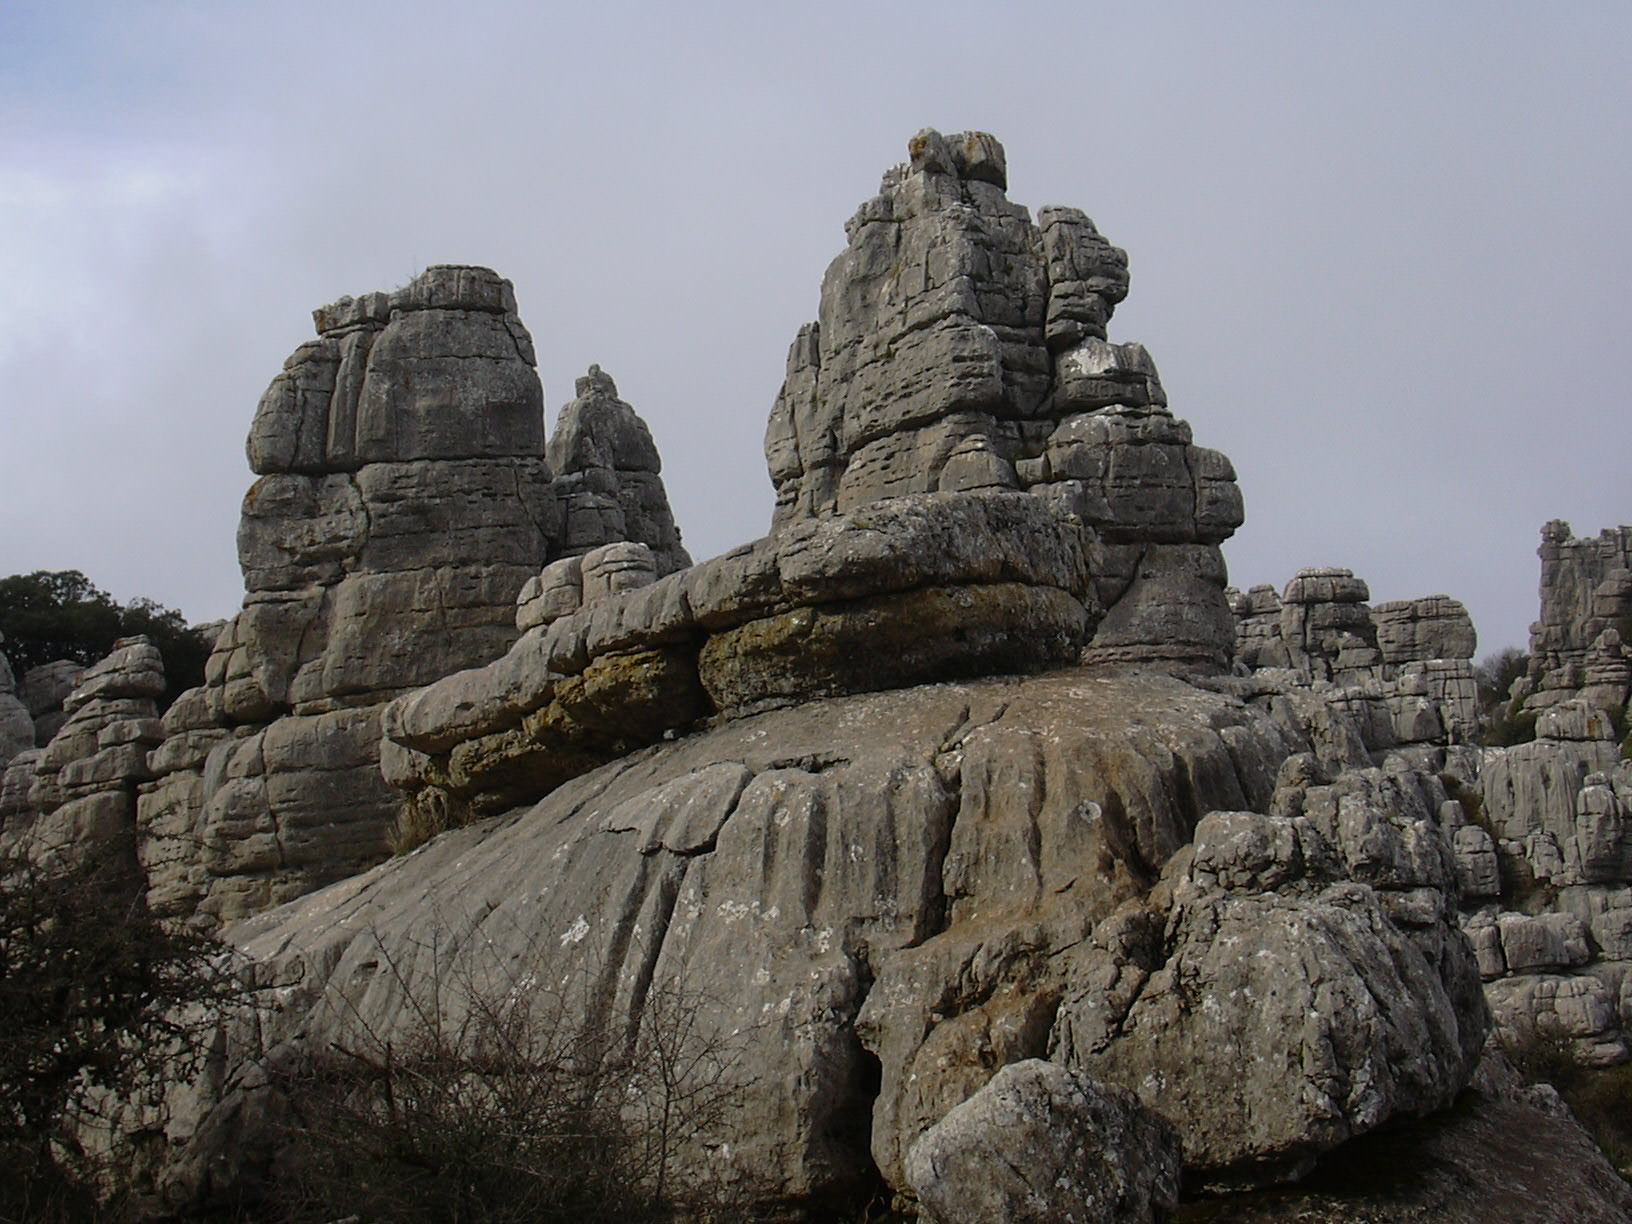 El Torcal rocks overview 10